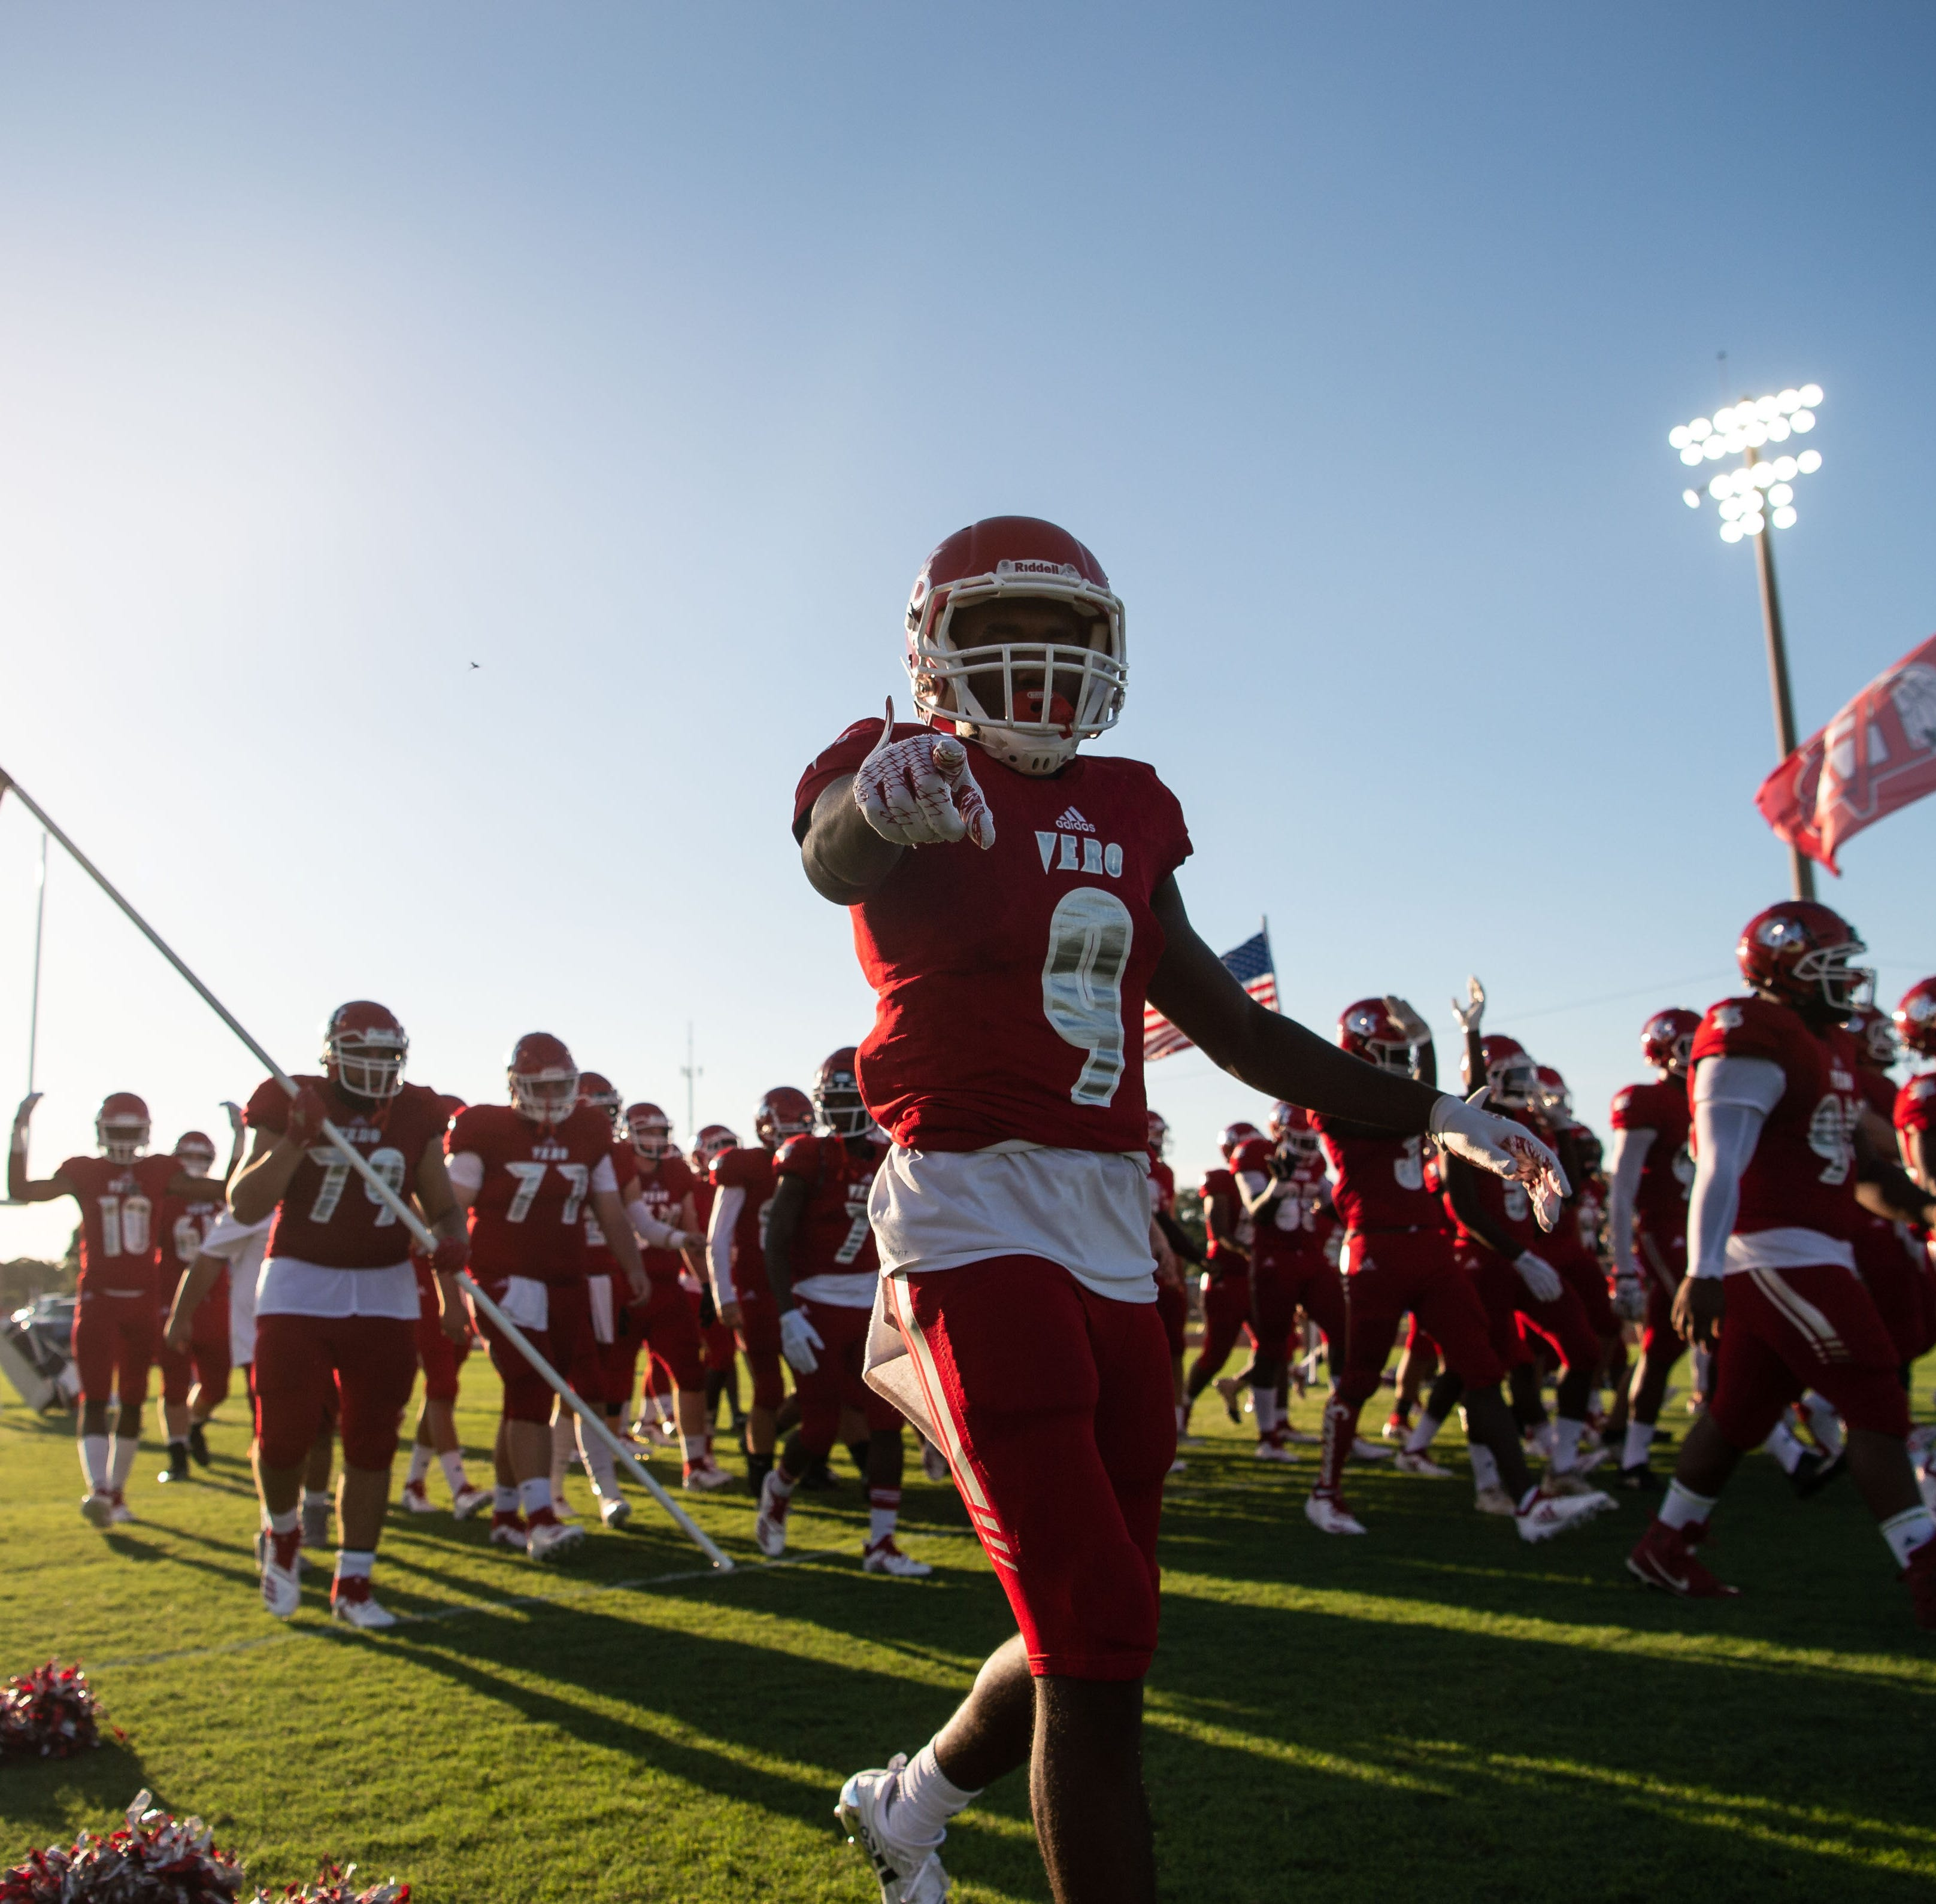 Week 5 Playbook: Vero Beach expecting stiff test from Pahokee